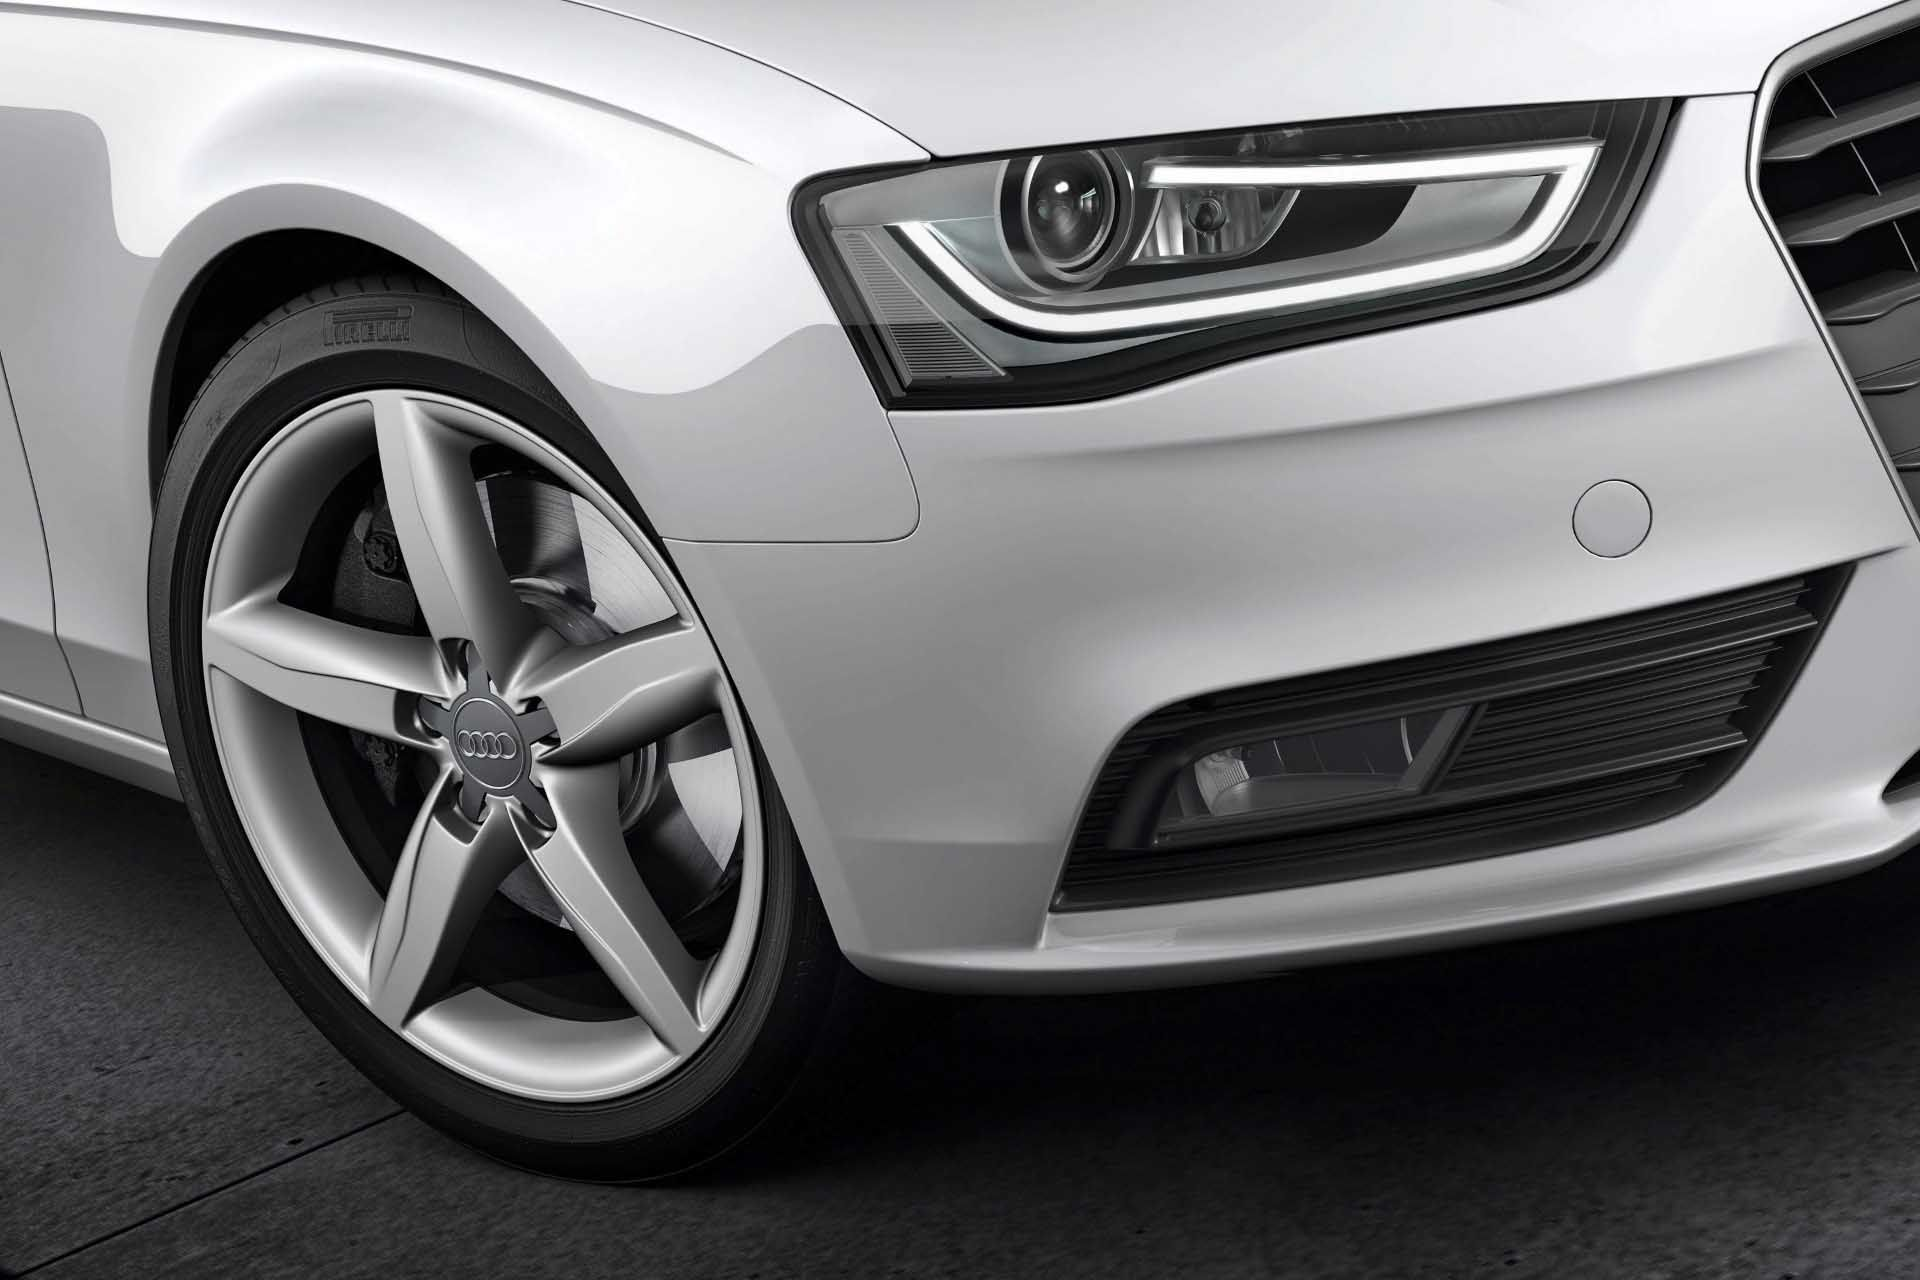 10 Wonderful Audi A4 Avant Wheel Desktop Background